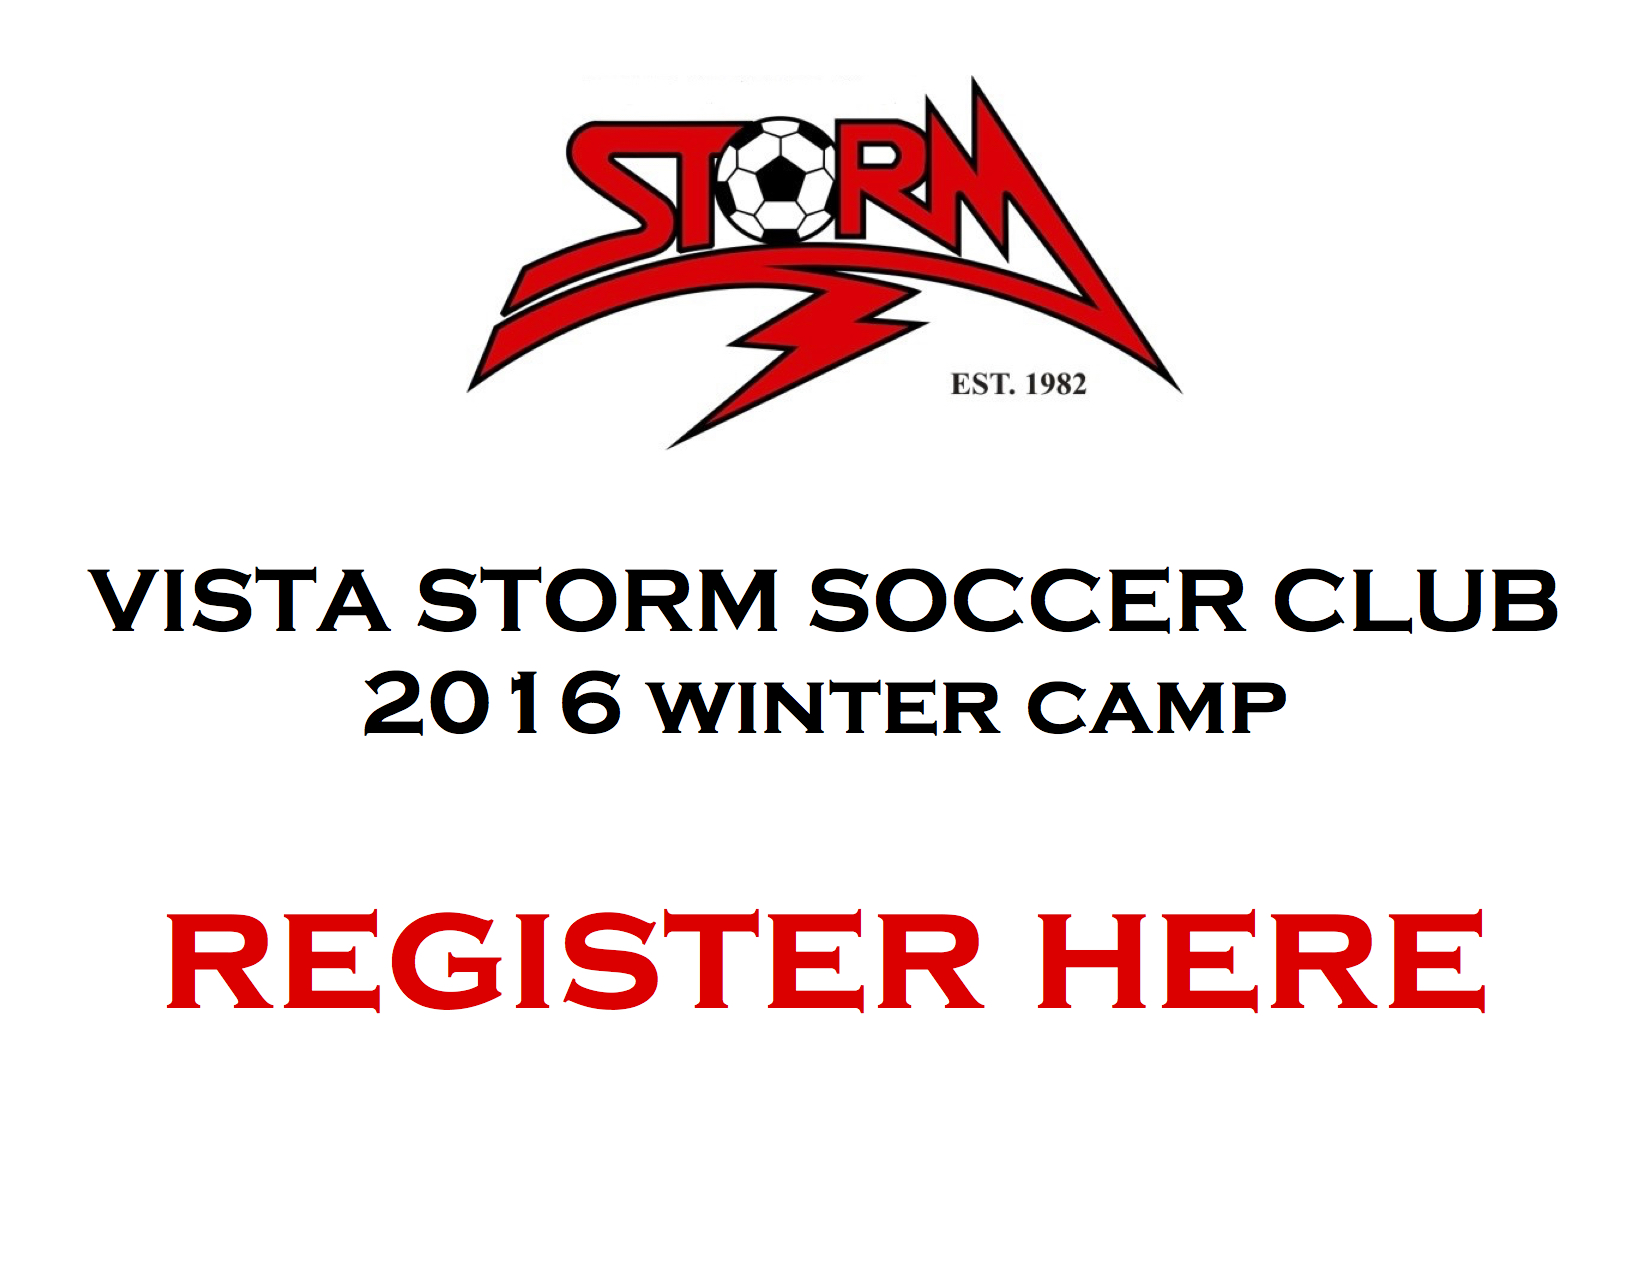 VISTA STORM WINTER CAMP ANNOUNCED